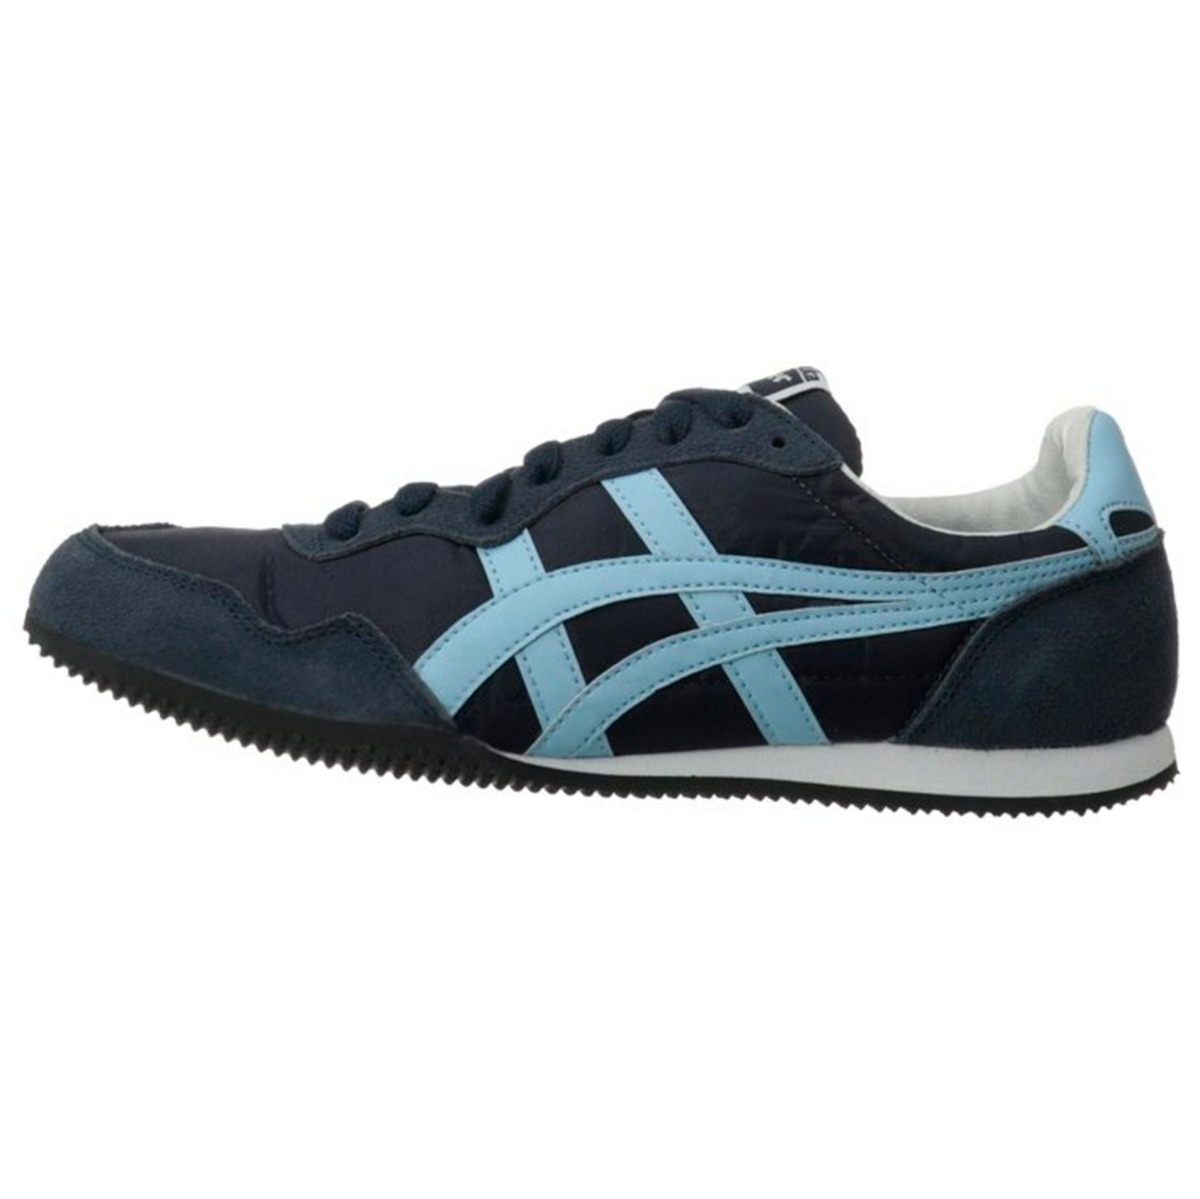 zapatos asics mujer casual